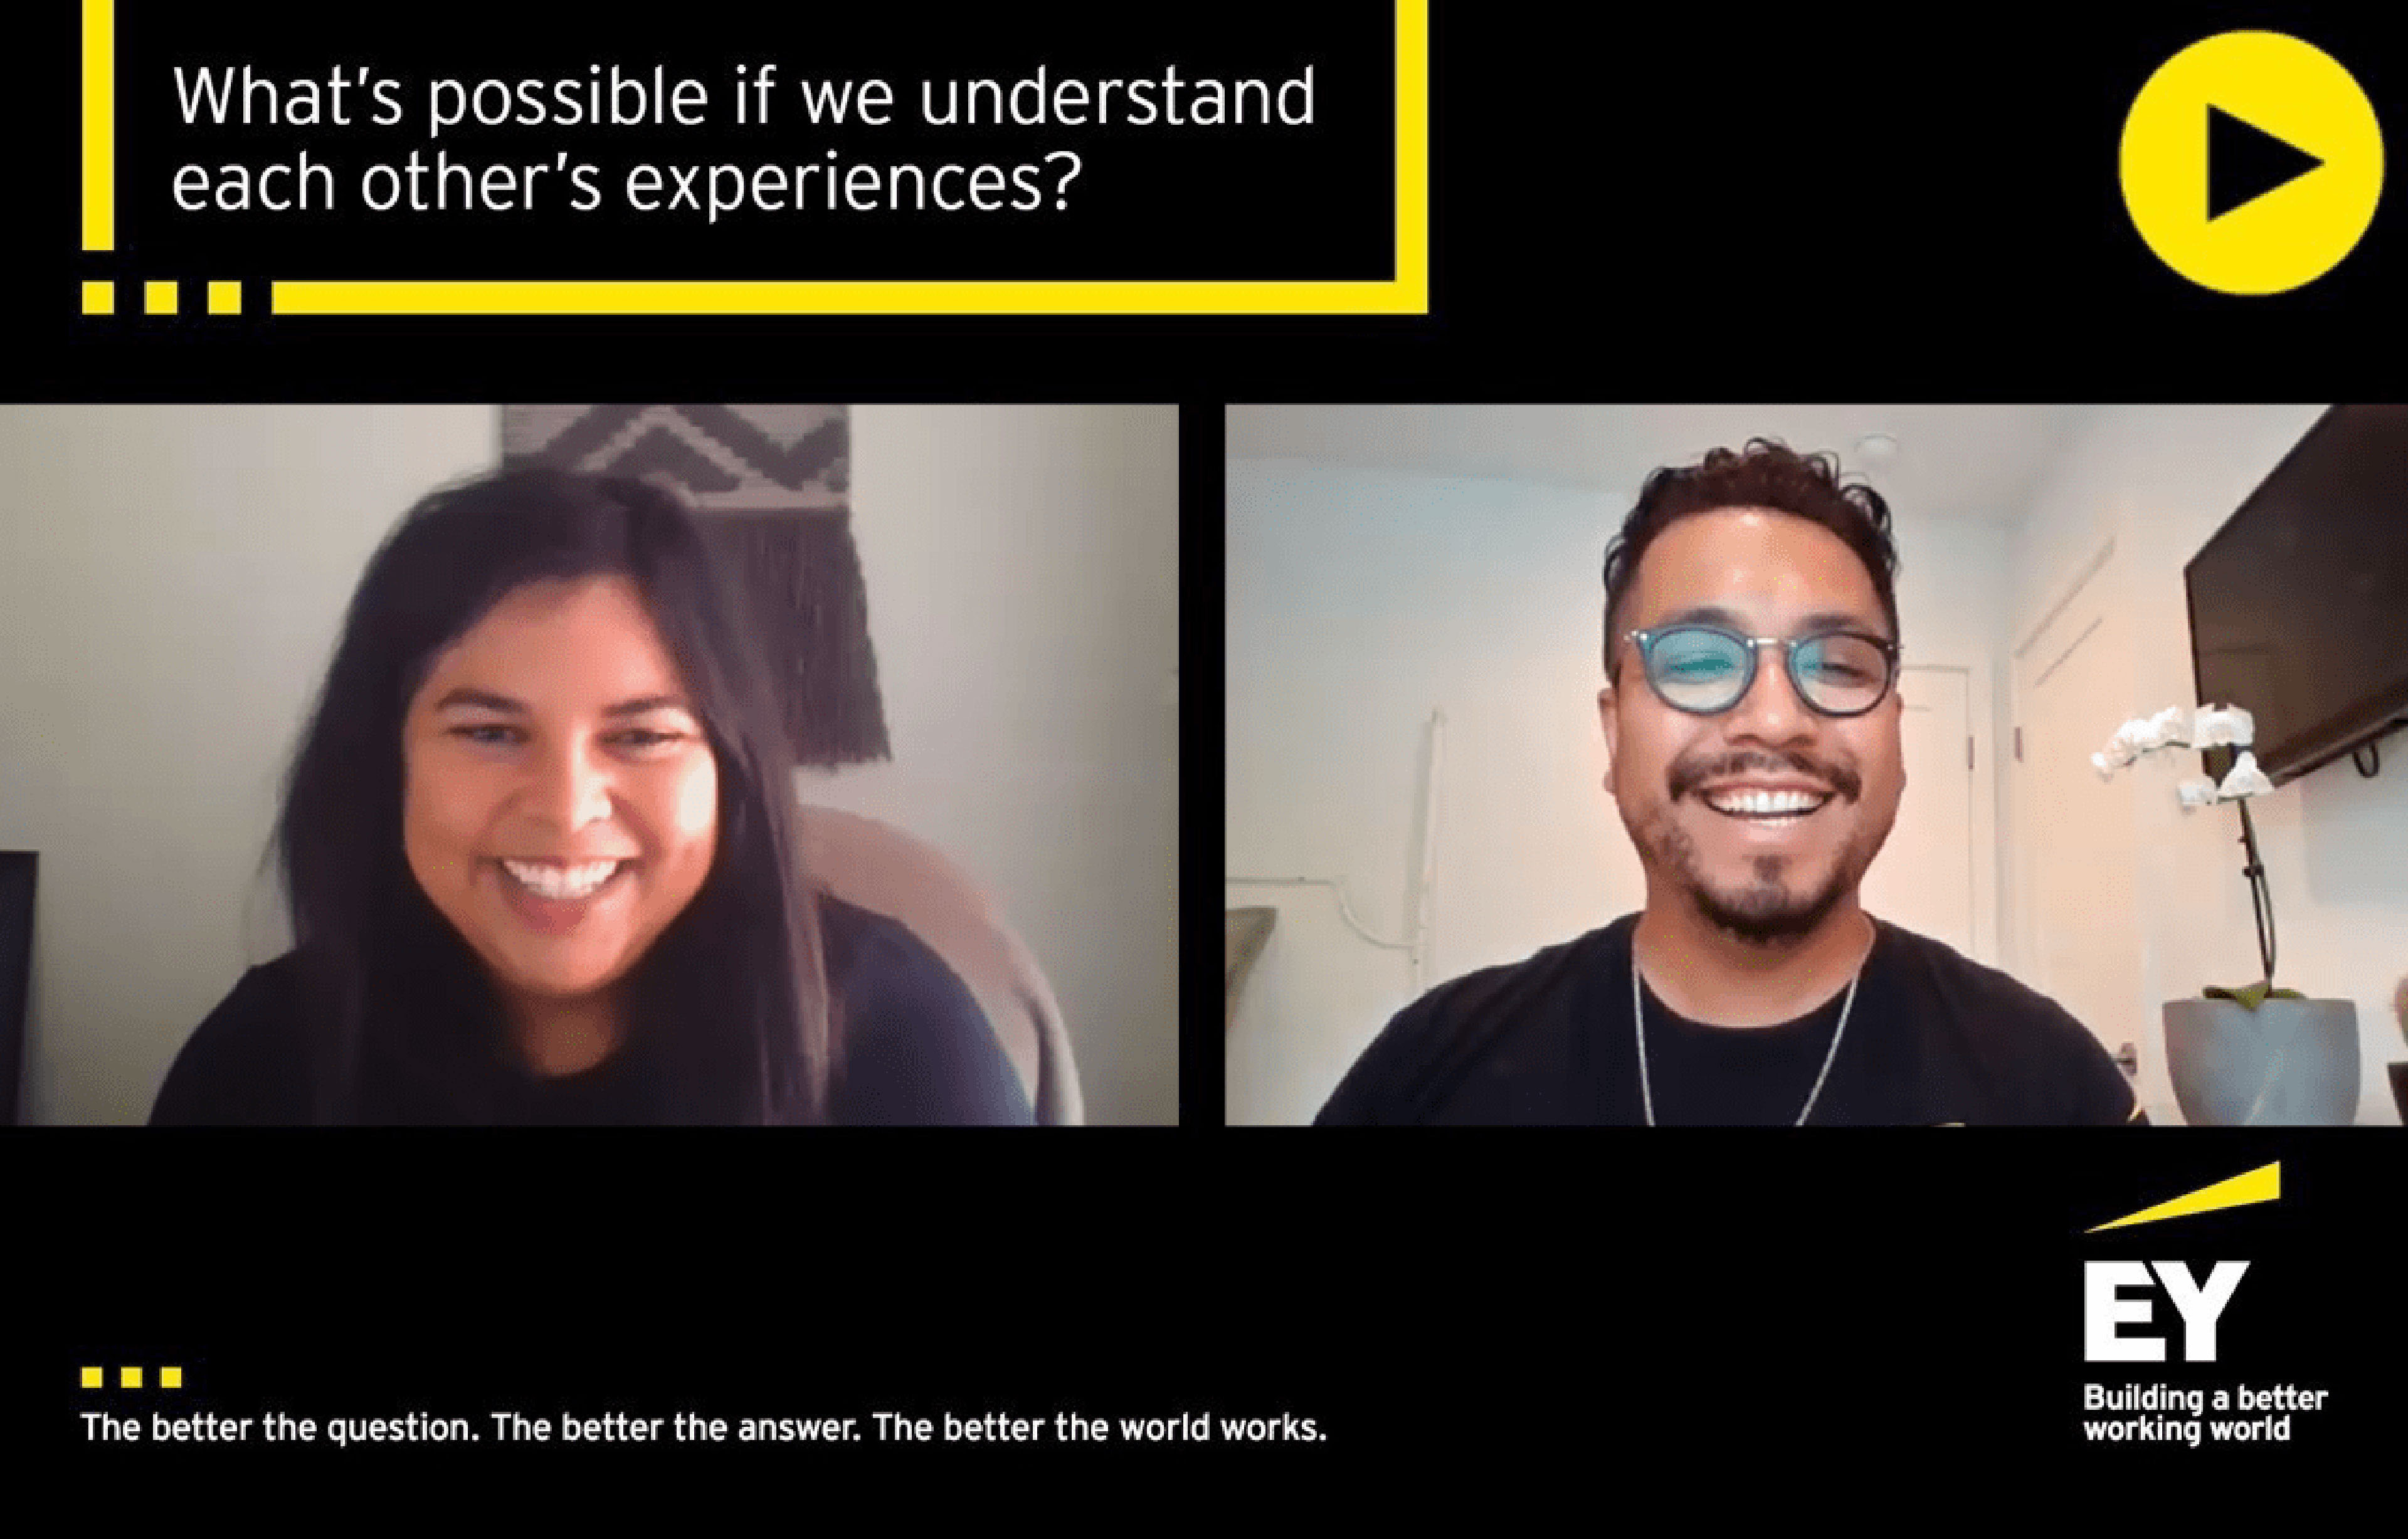 EY - Video Understanding each others experience